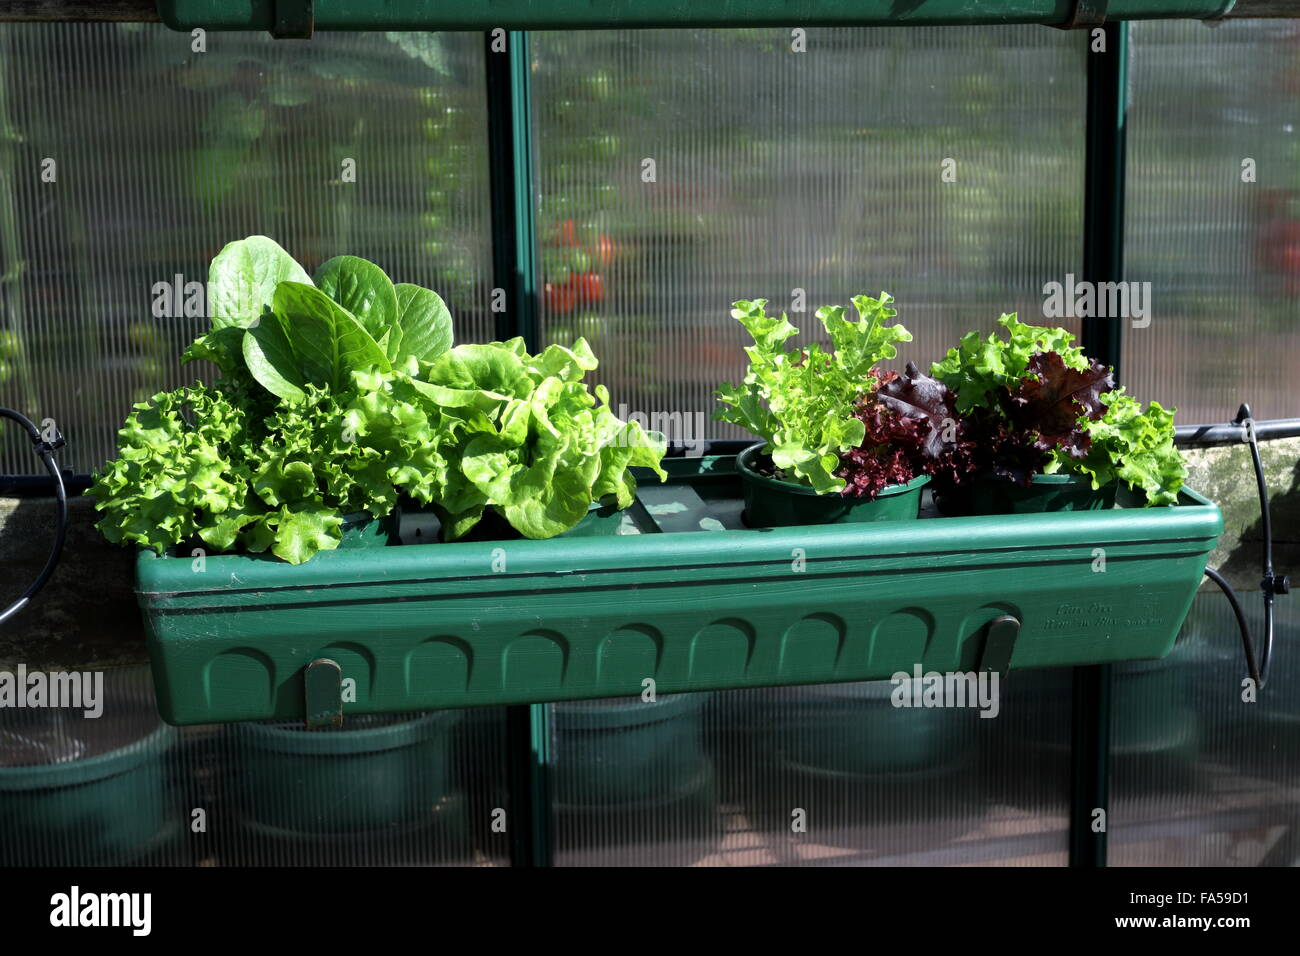 Growing lettuce in a pot - Growing Different Variety Of Lettuce Plant In A Pot